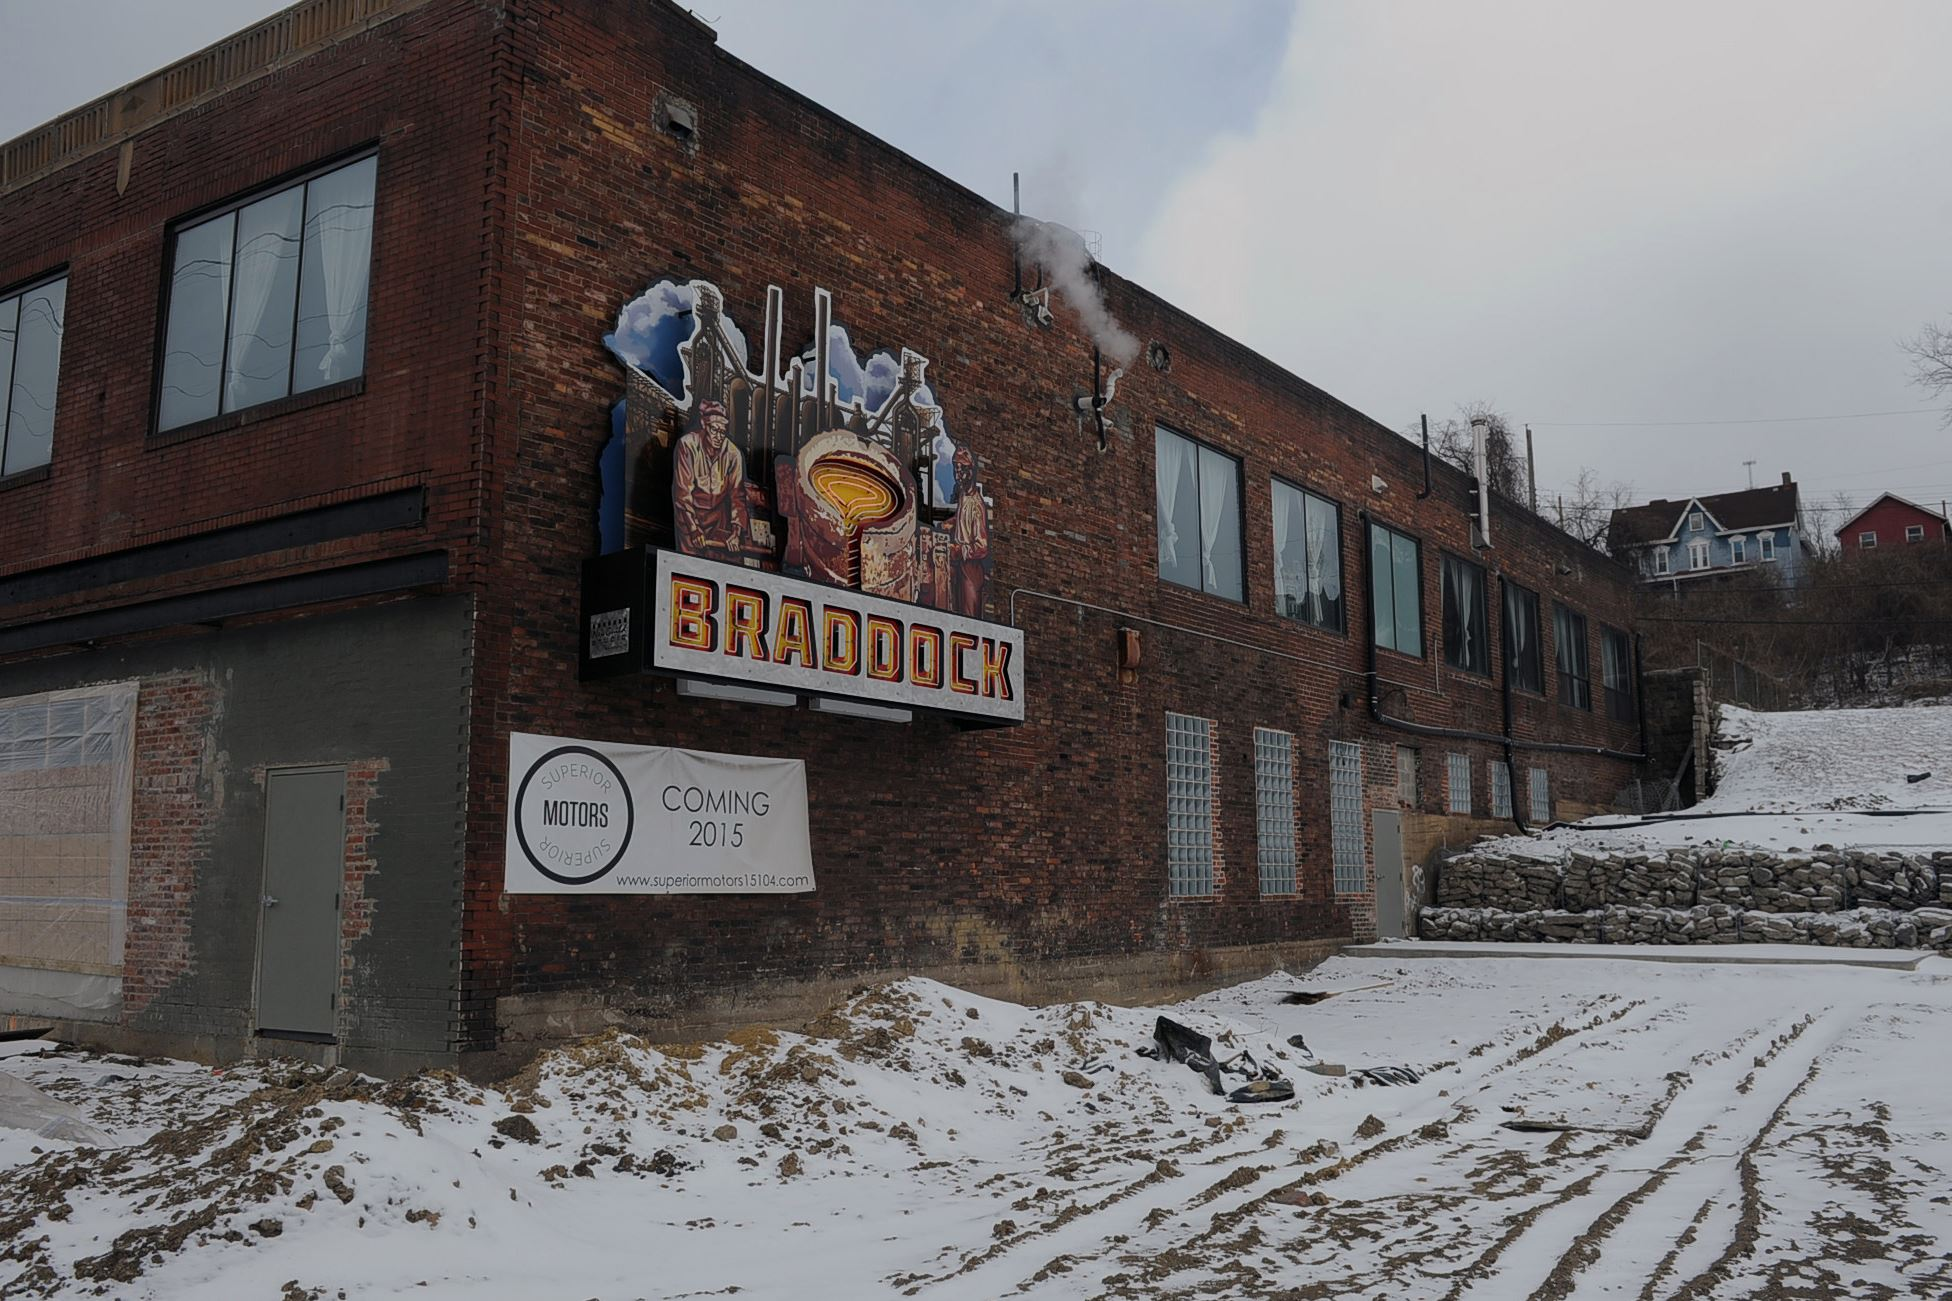 Kevin Sousa Braddock Superior Motors The exterior of Superior Motors, a restaurant slated to open in June in Braddock.